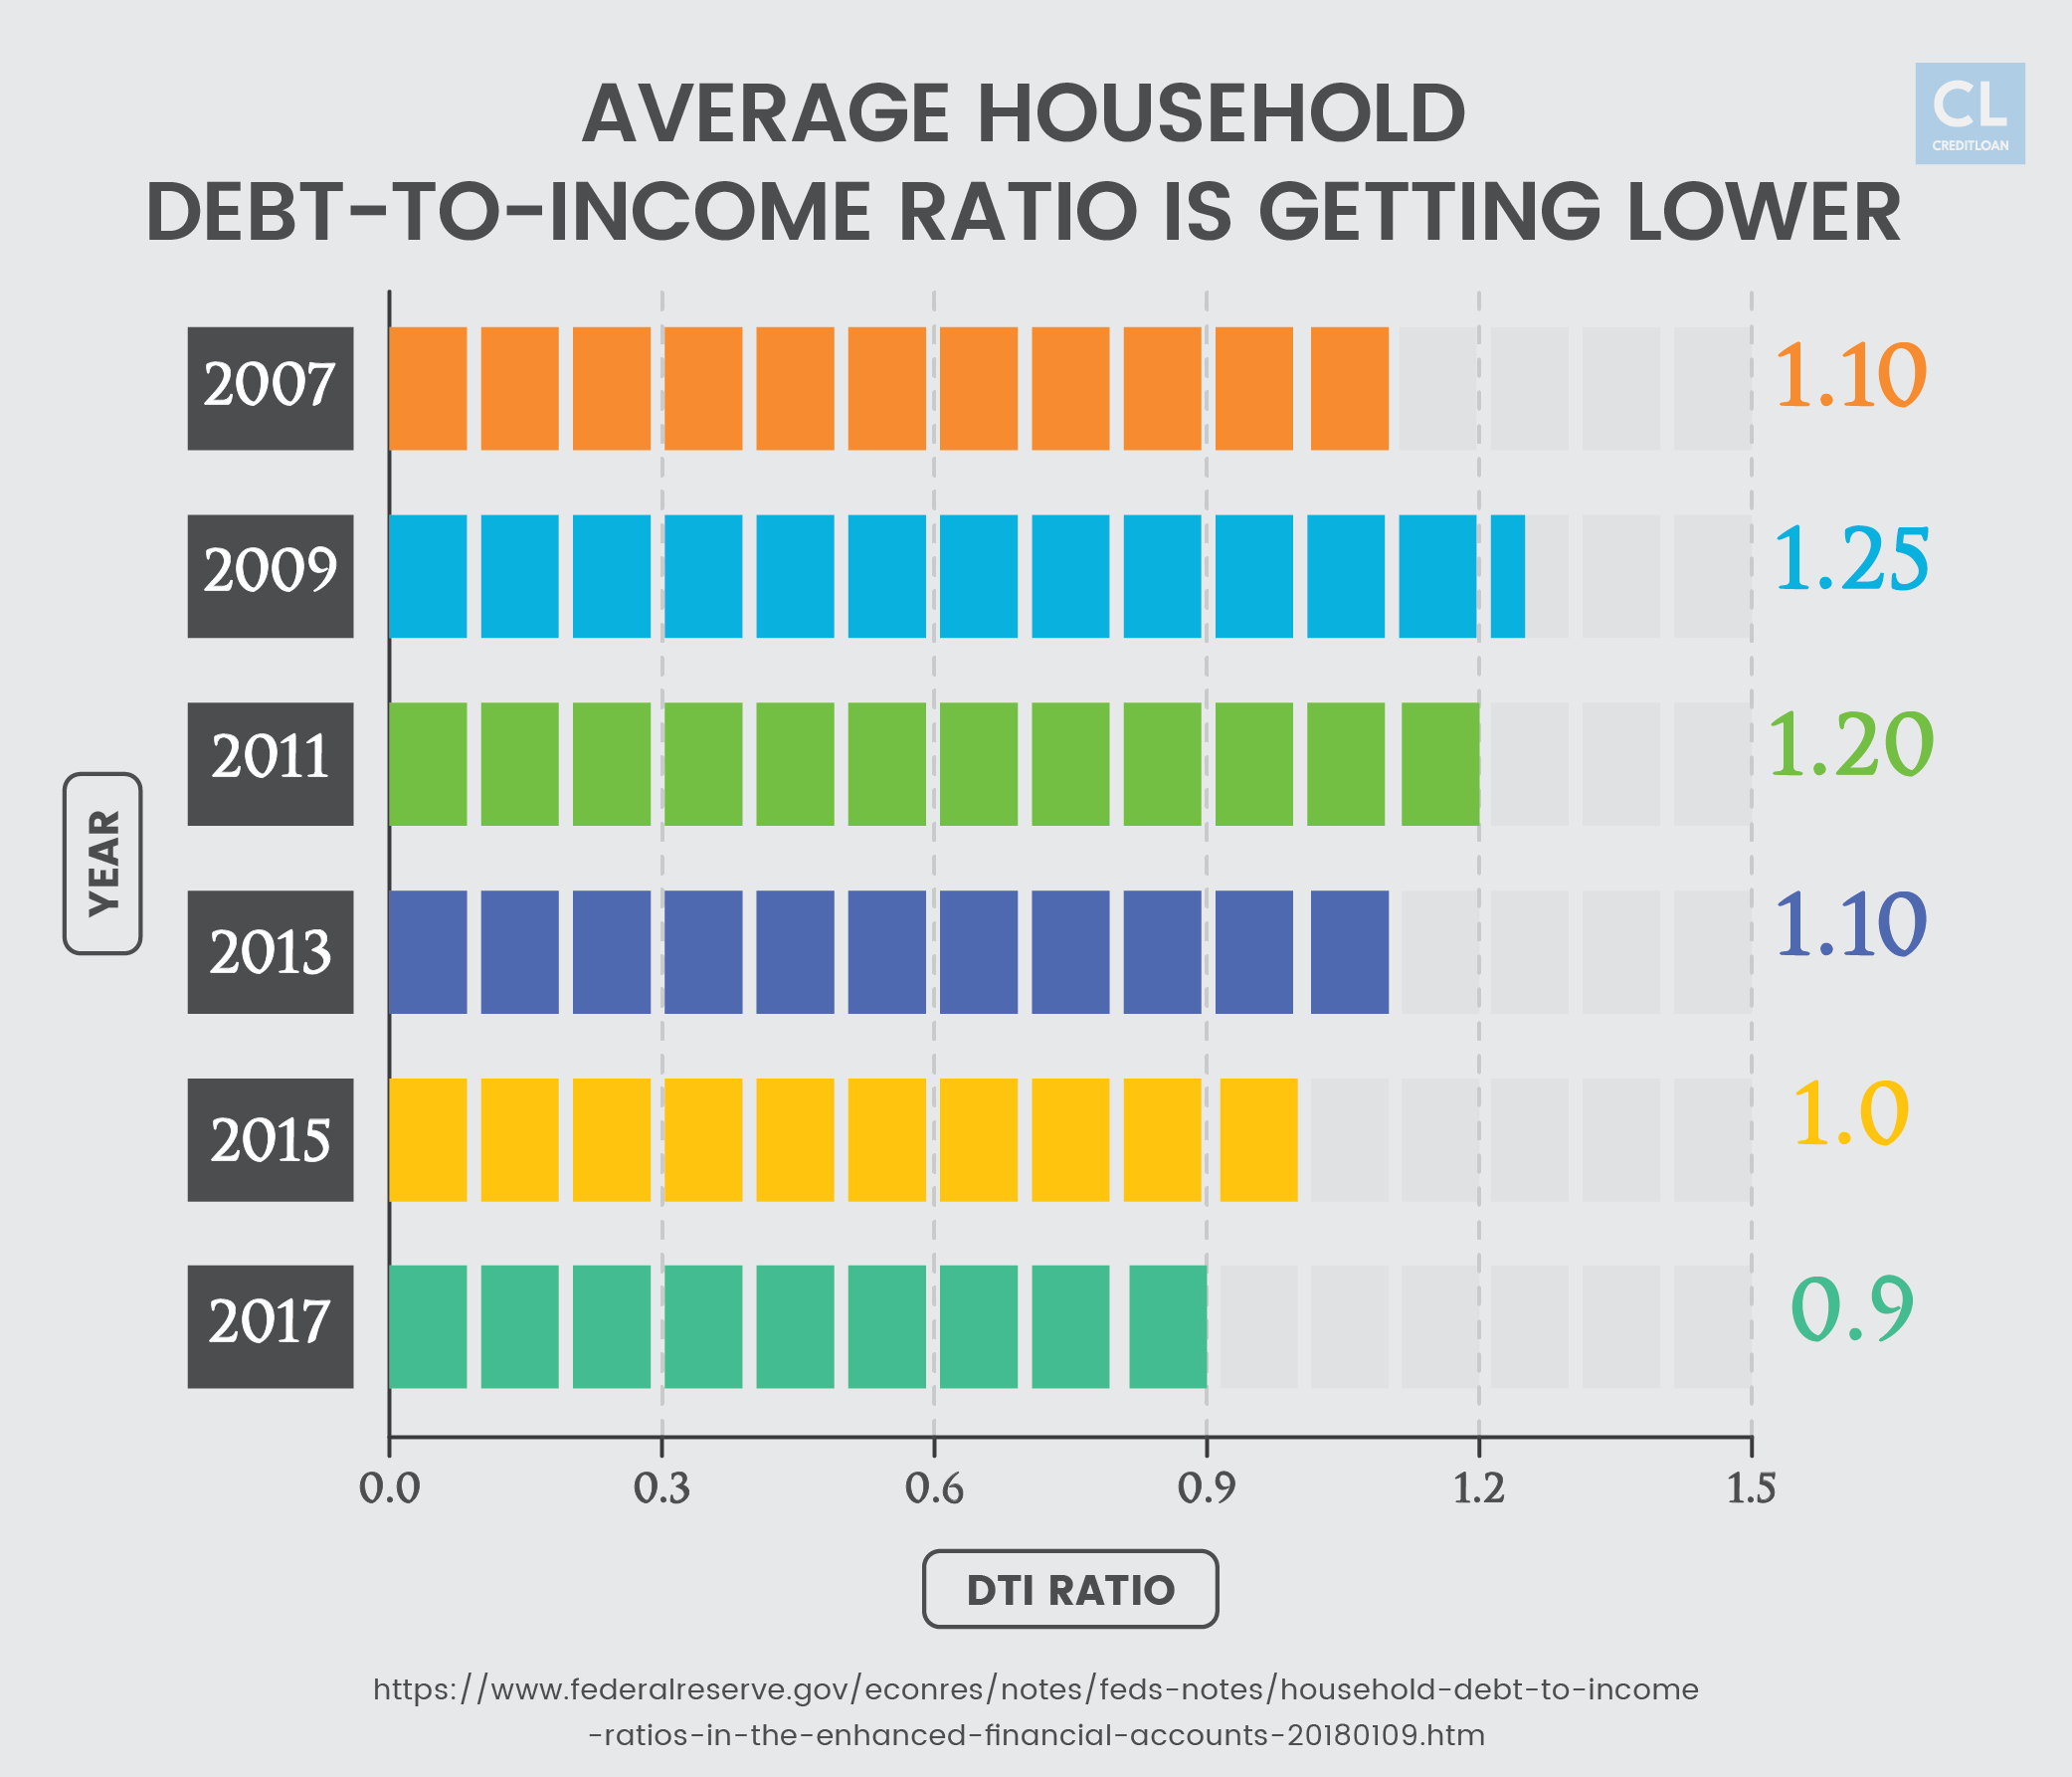 Average Household Debt-to-Income Ratio from 2007-2017